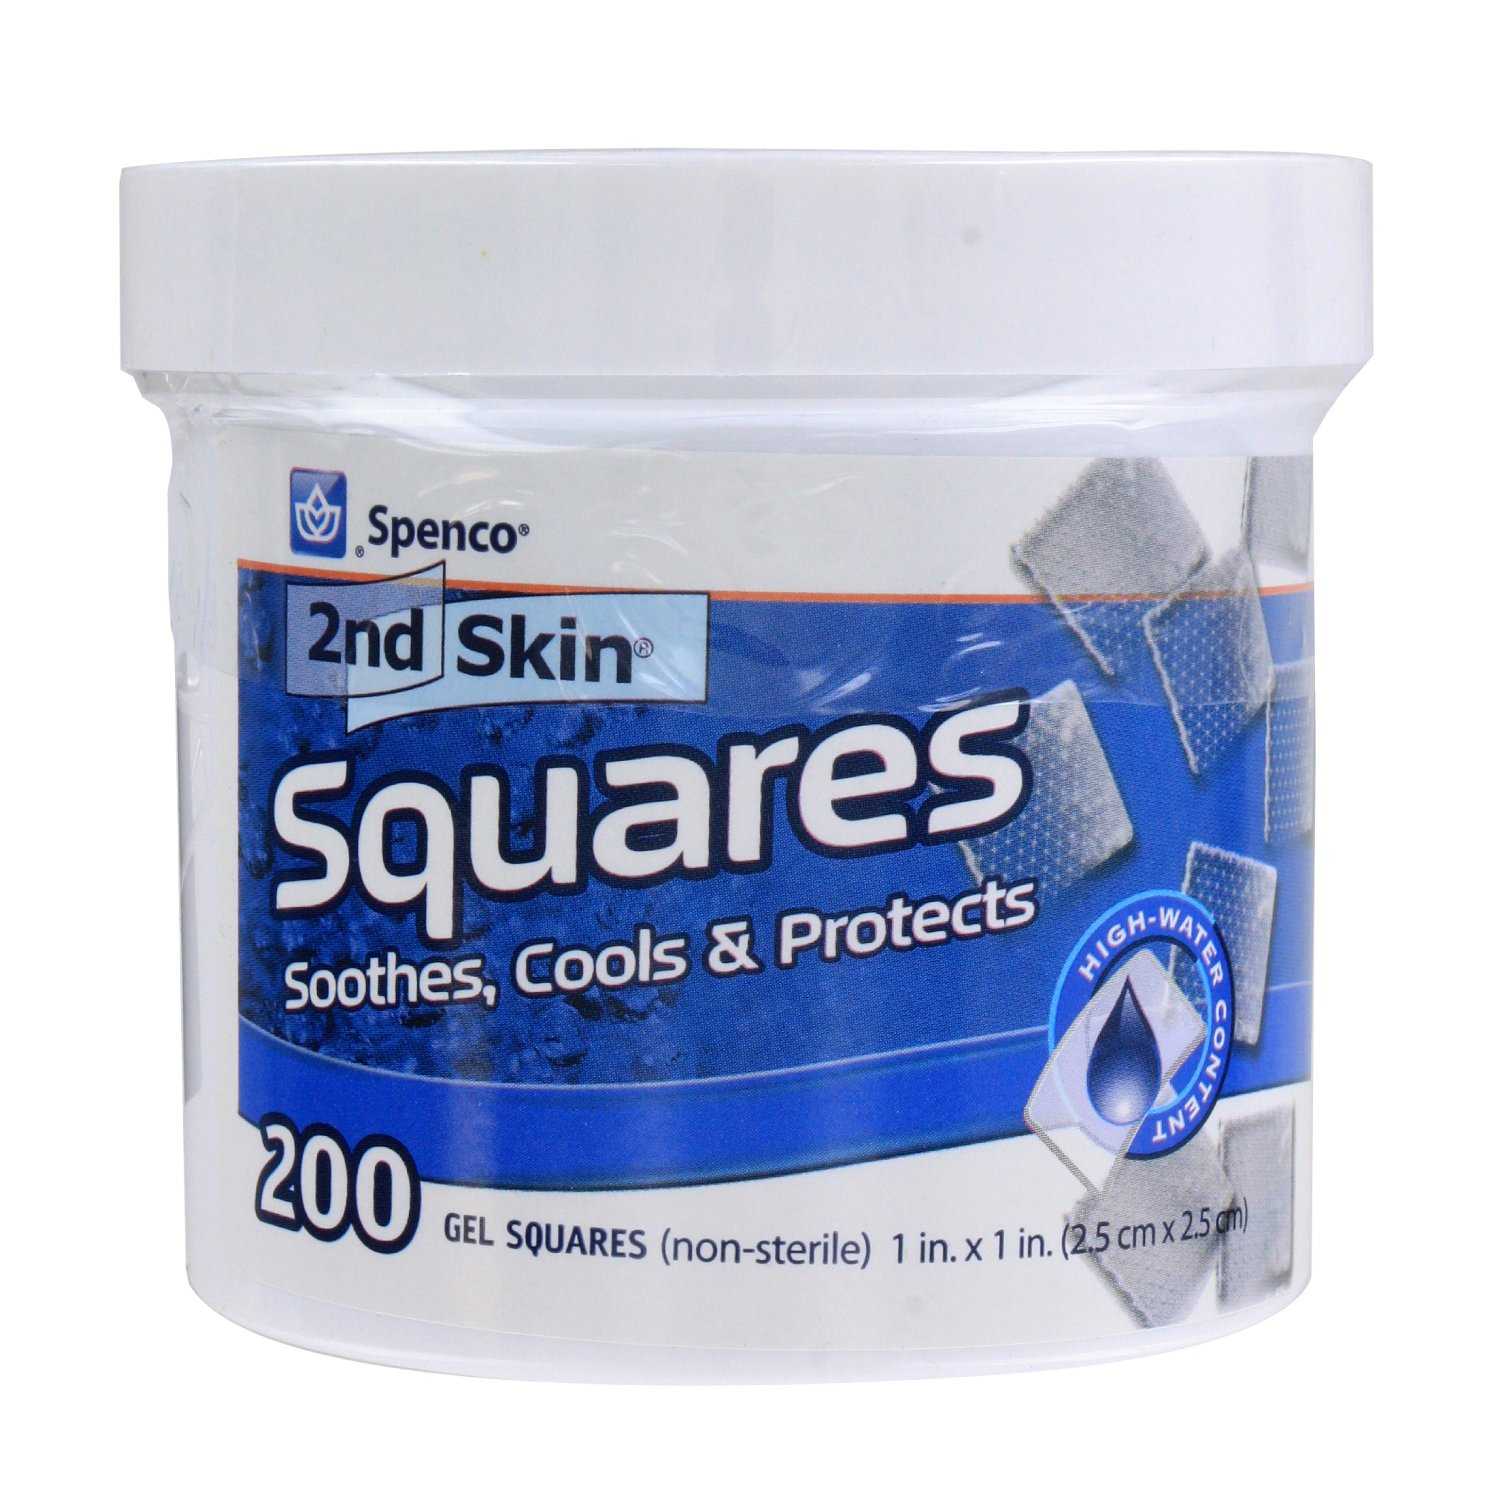 Spenco 2nd Skin Squares Soothing Protection for Blisters, Hot Spots and Skin Irritations, Gel Squares 200-Count